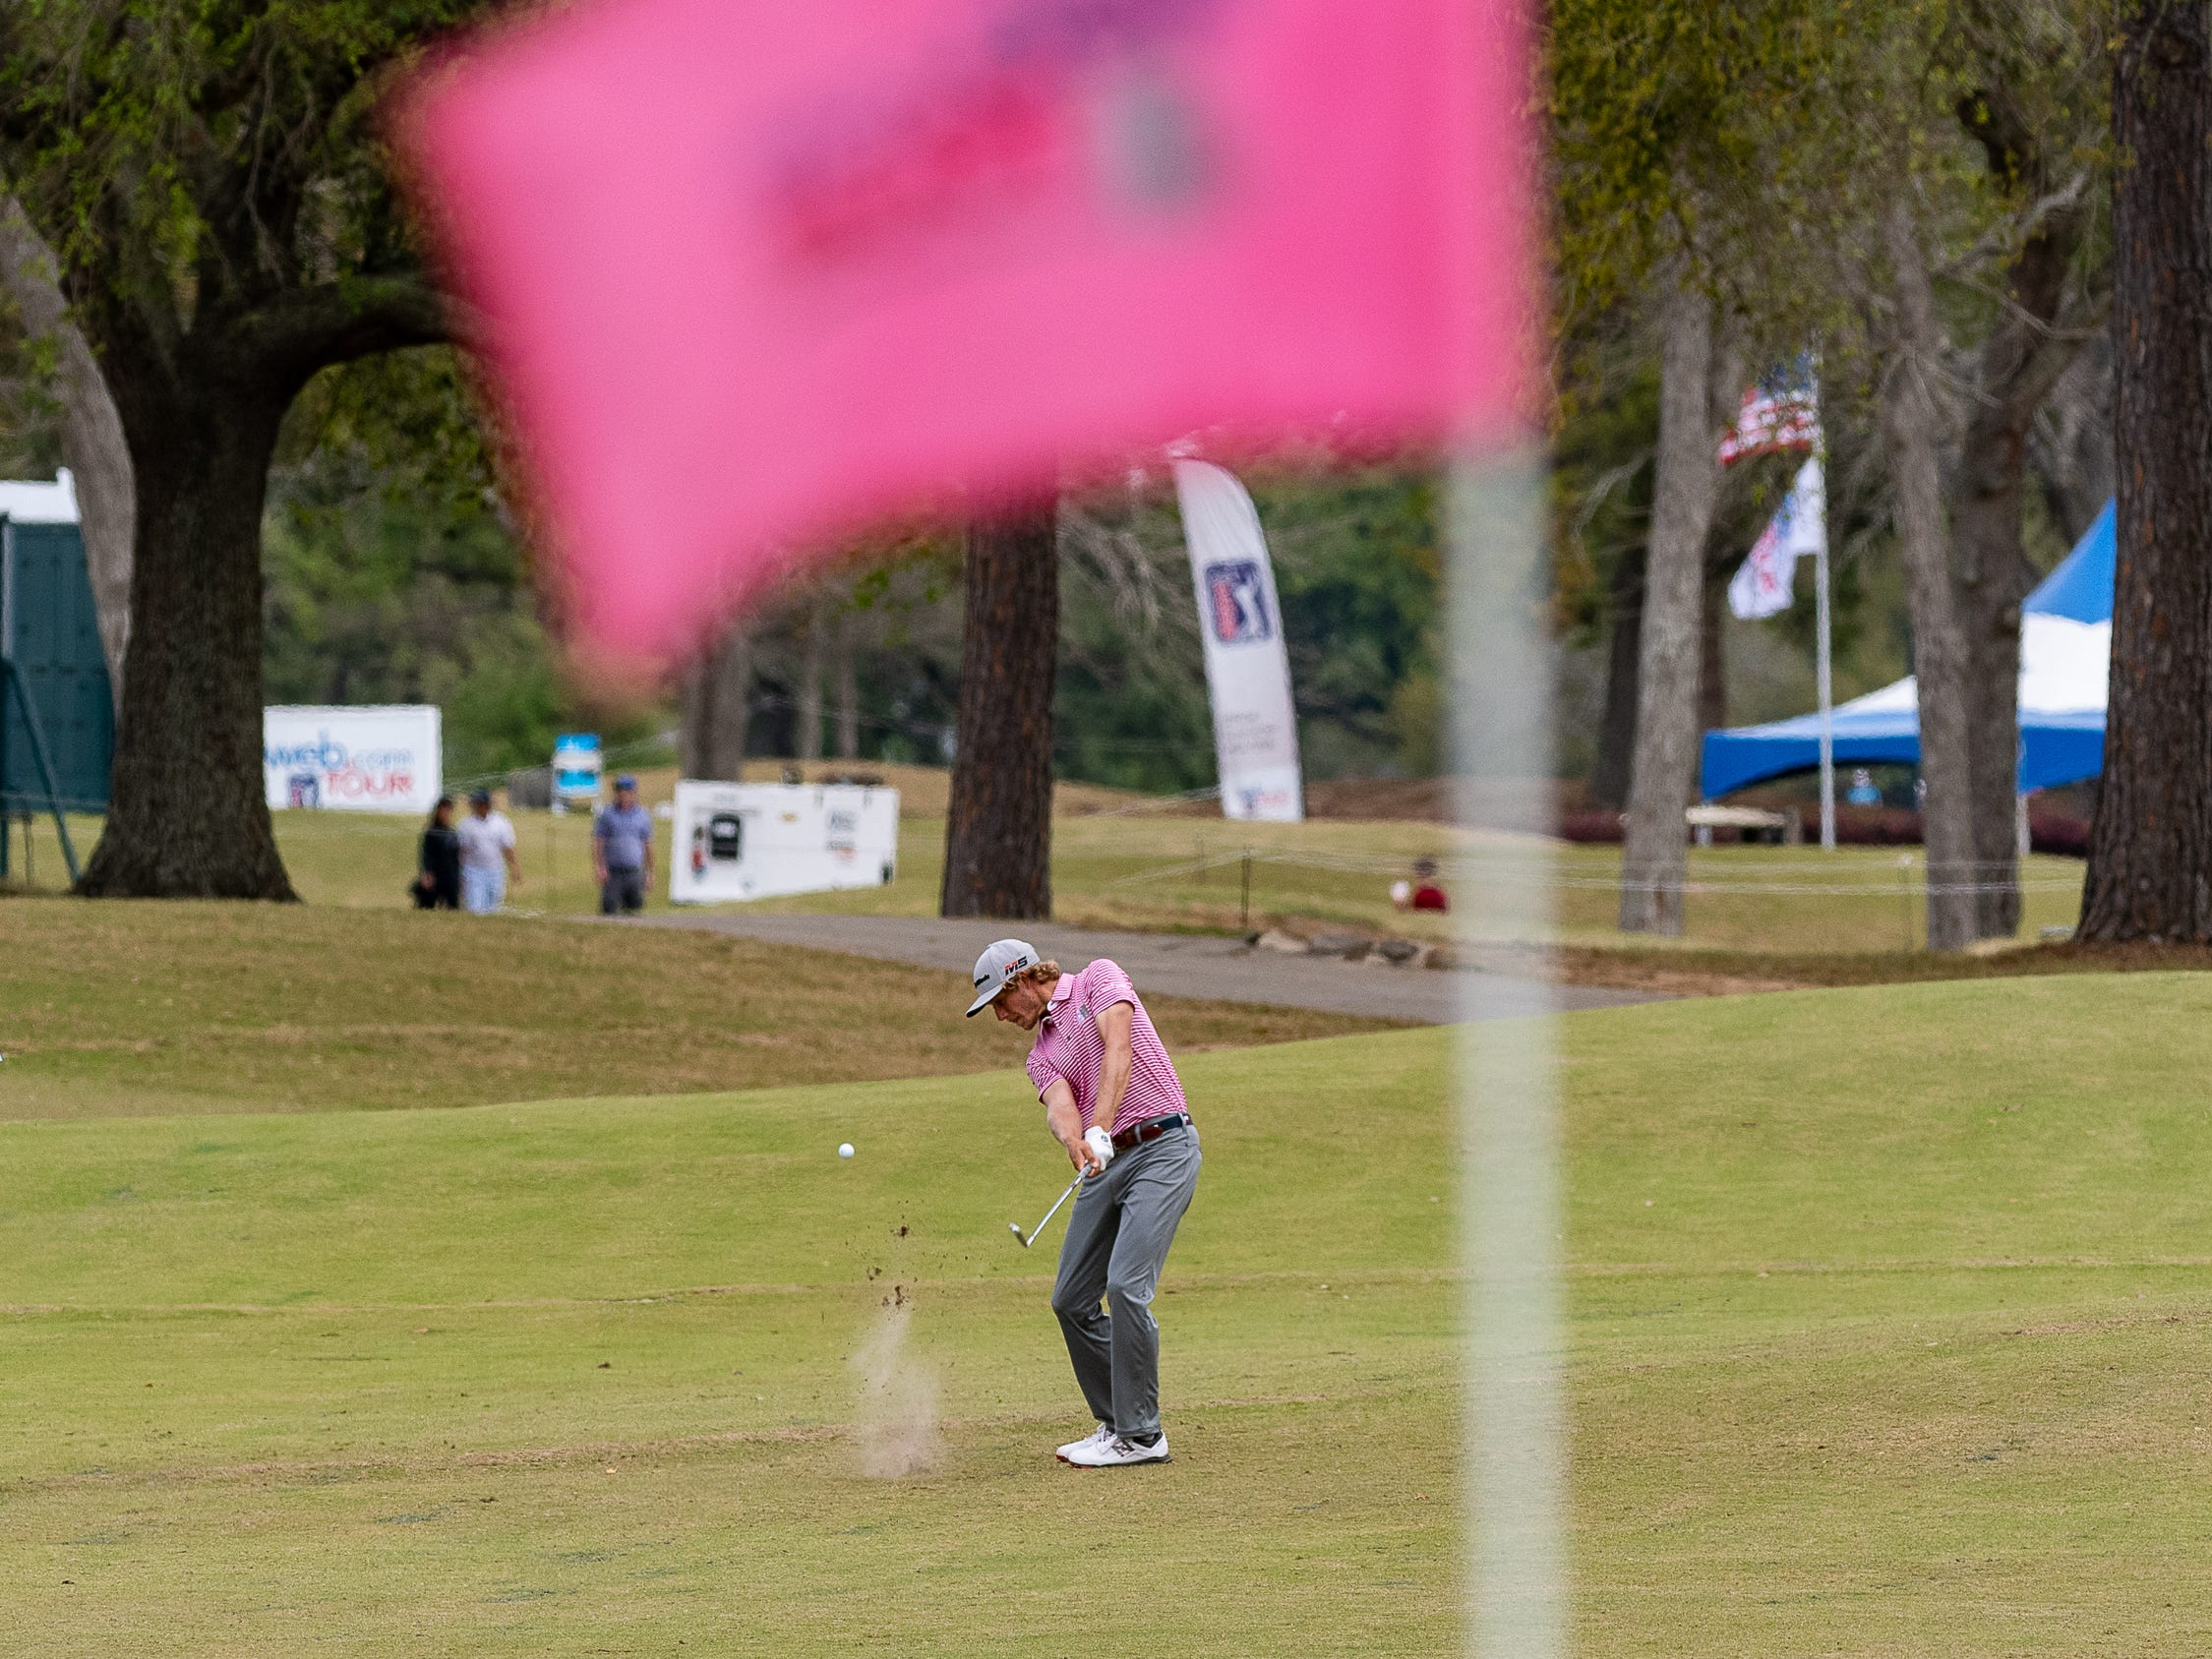 Austin Smotherman hits approach shot on 13 during the final round of the Web.com 2019 Chitimacha Louisiana Open presented by Mistras at Le Triomphe. Sunday, March 24, 2019.